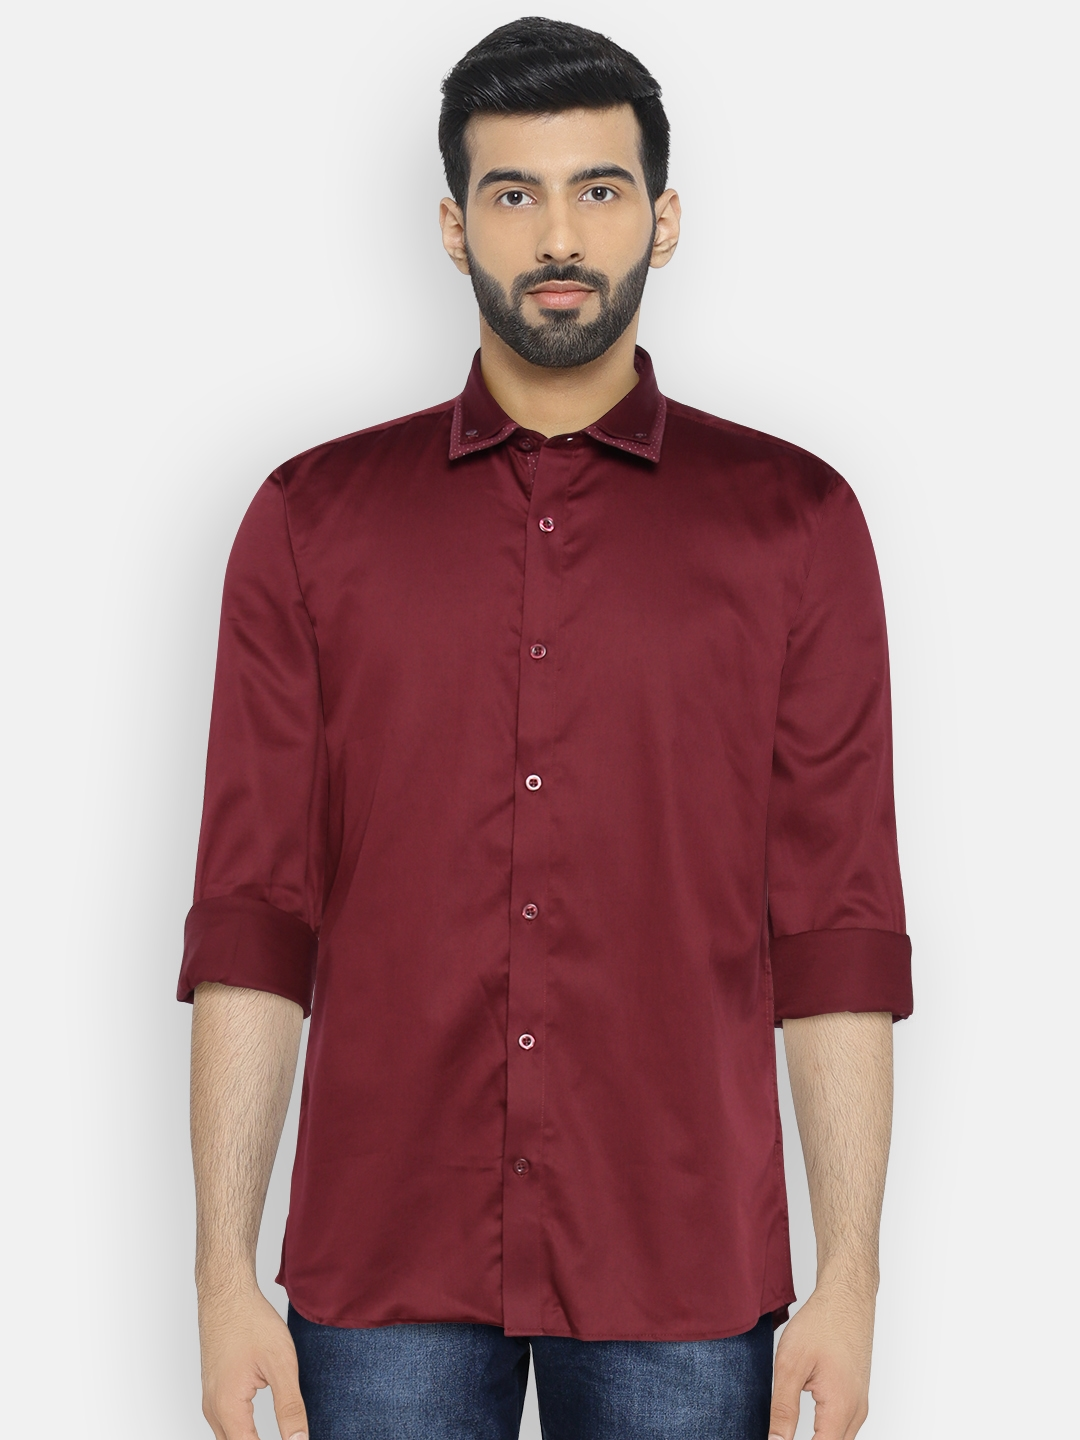 0e15c00346 Buy Independence Club Men Maroon Slim Fit Solid Casual Shirt ...